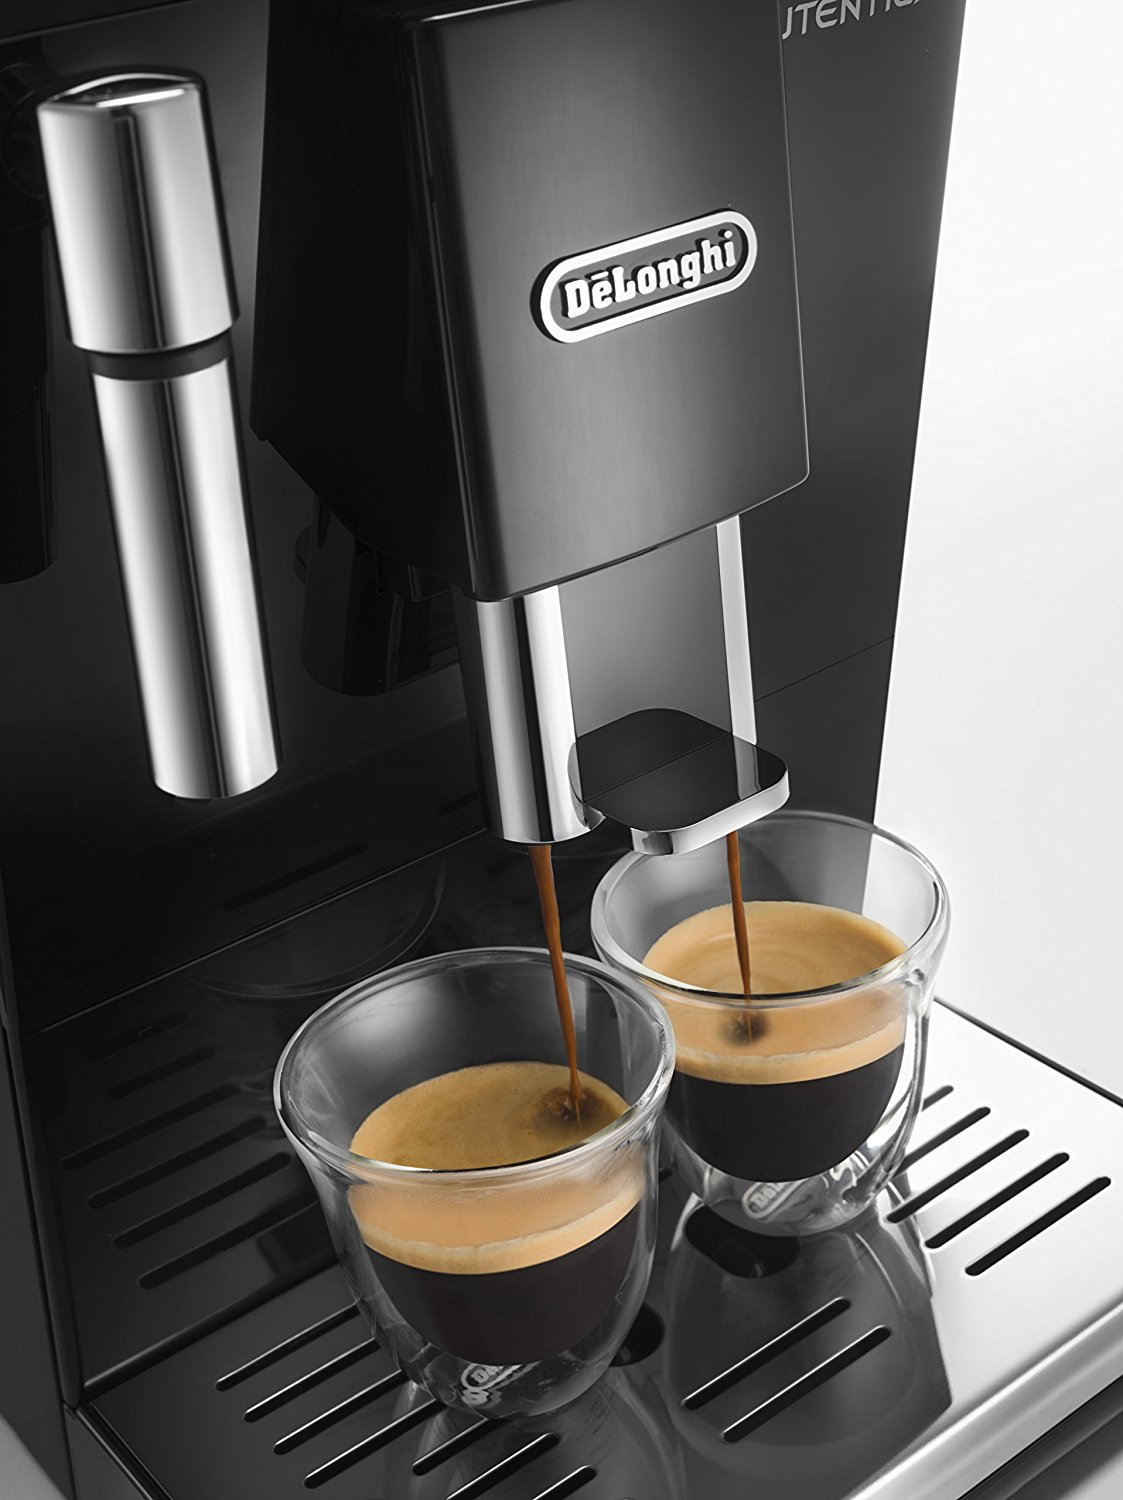 Best Bean to Cup Coffee Machine 2021 UK